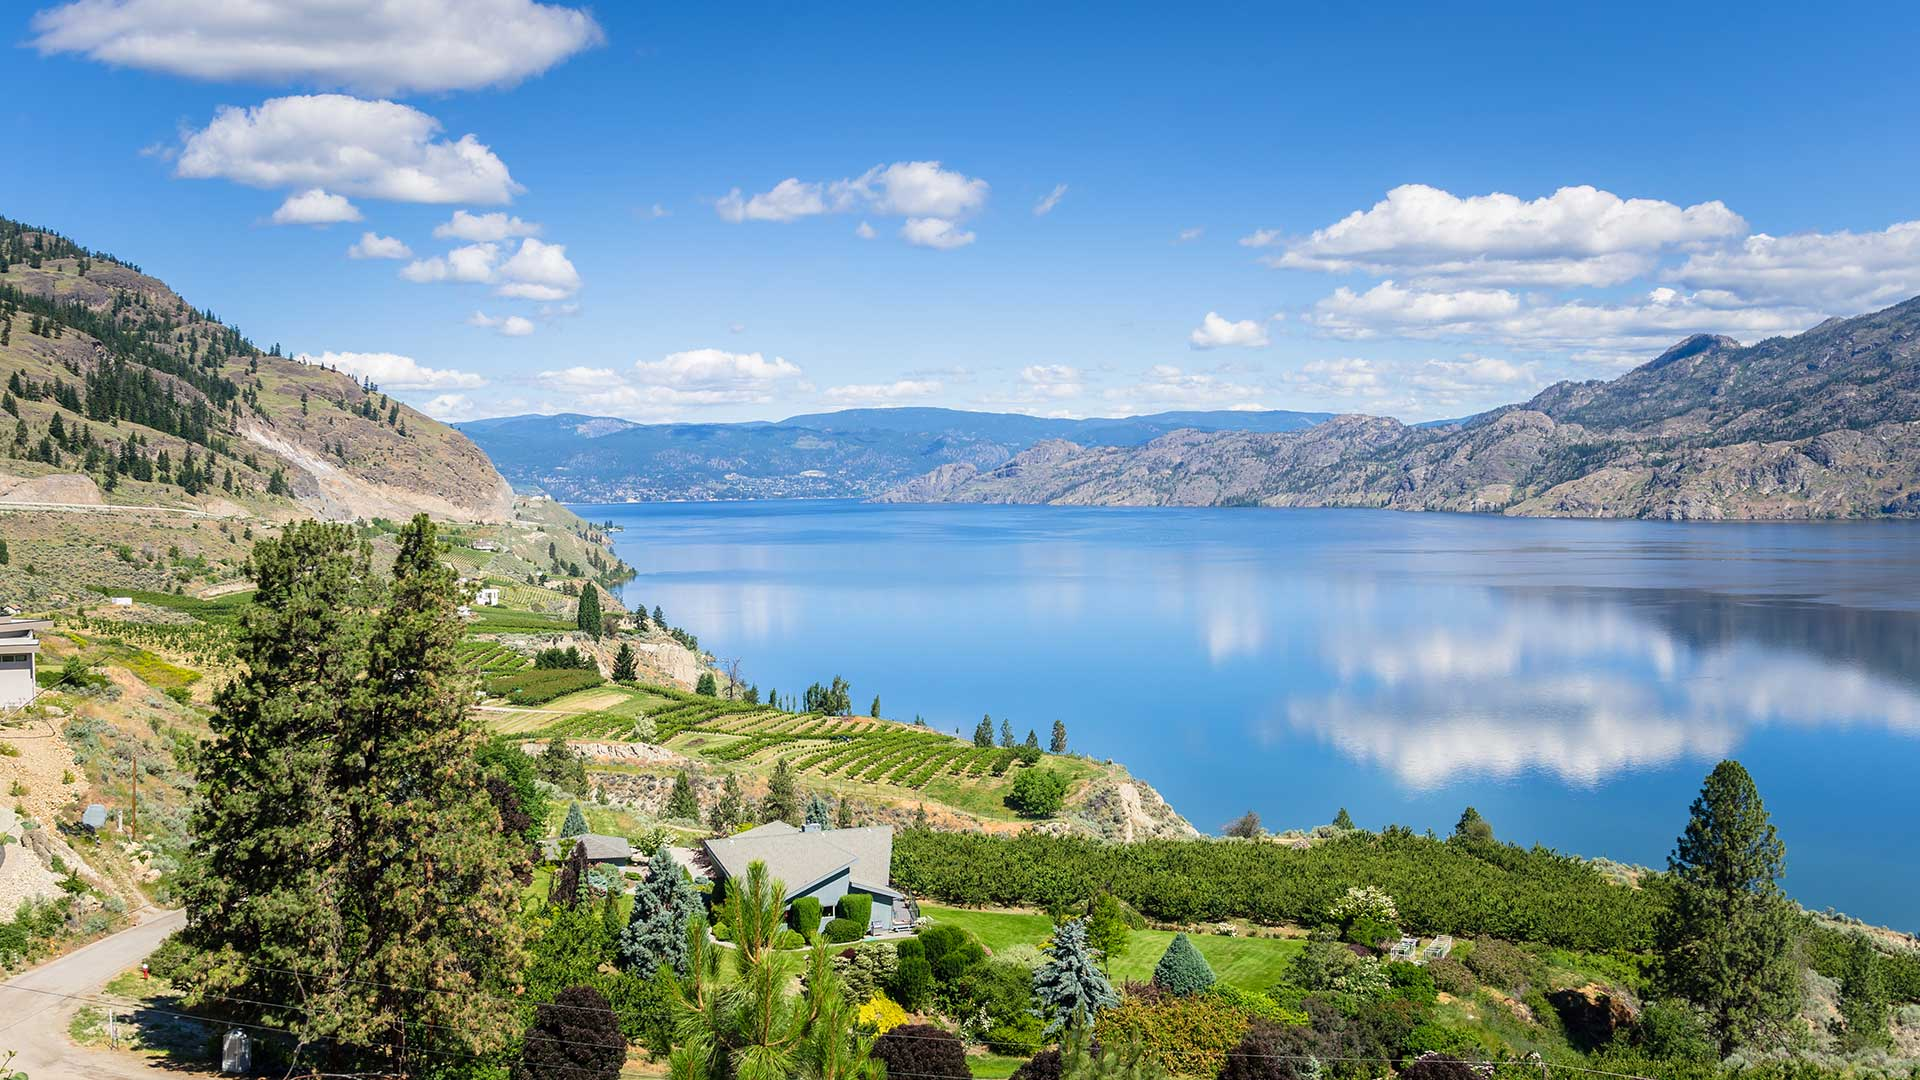 Panorama to illustrate dating in penticton